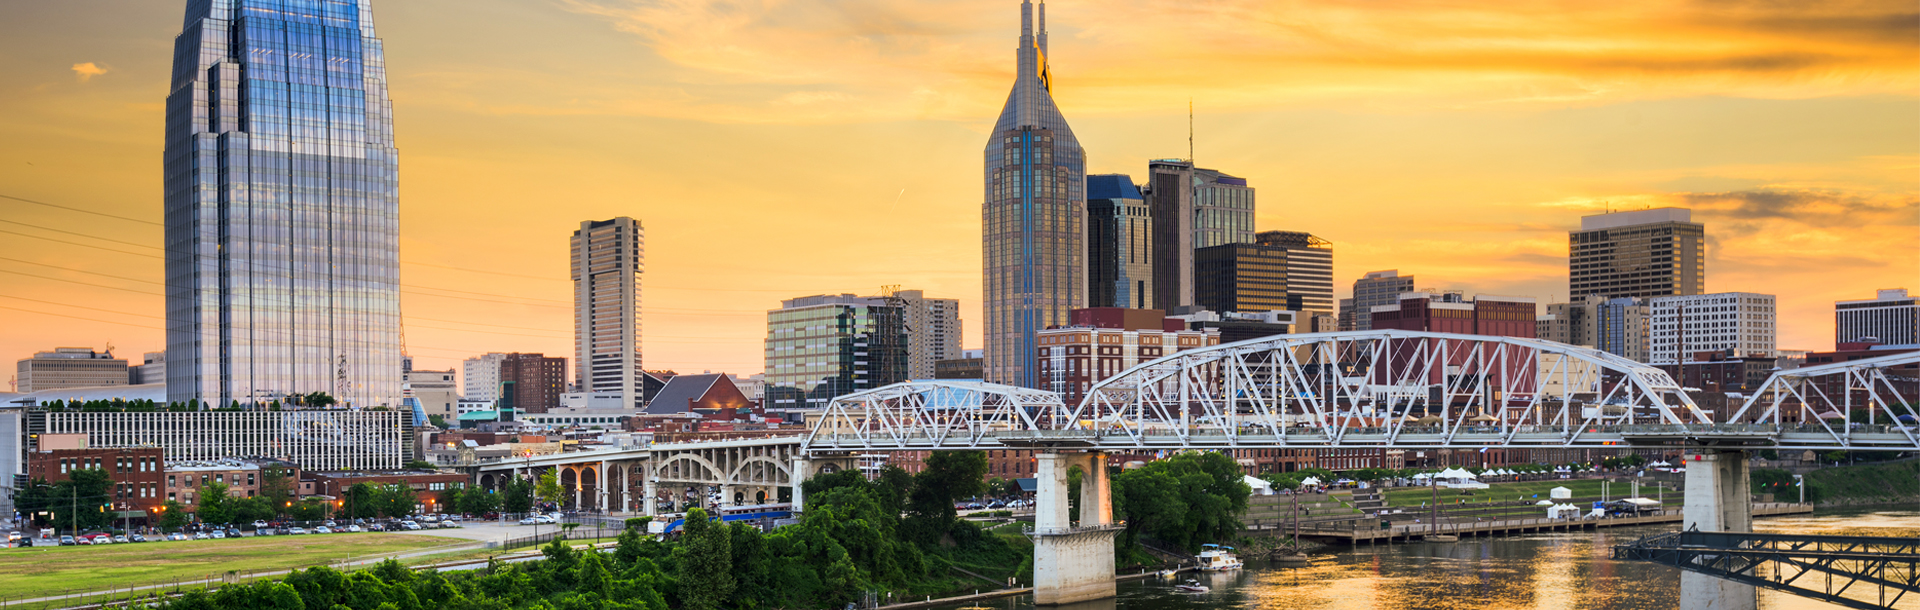 Panoramic view of Nashville skyline with yellow sky